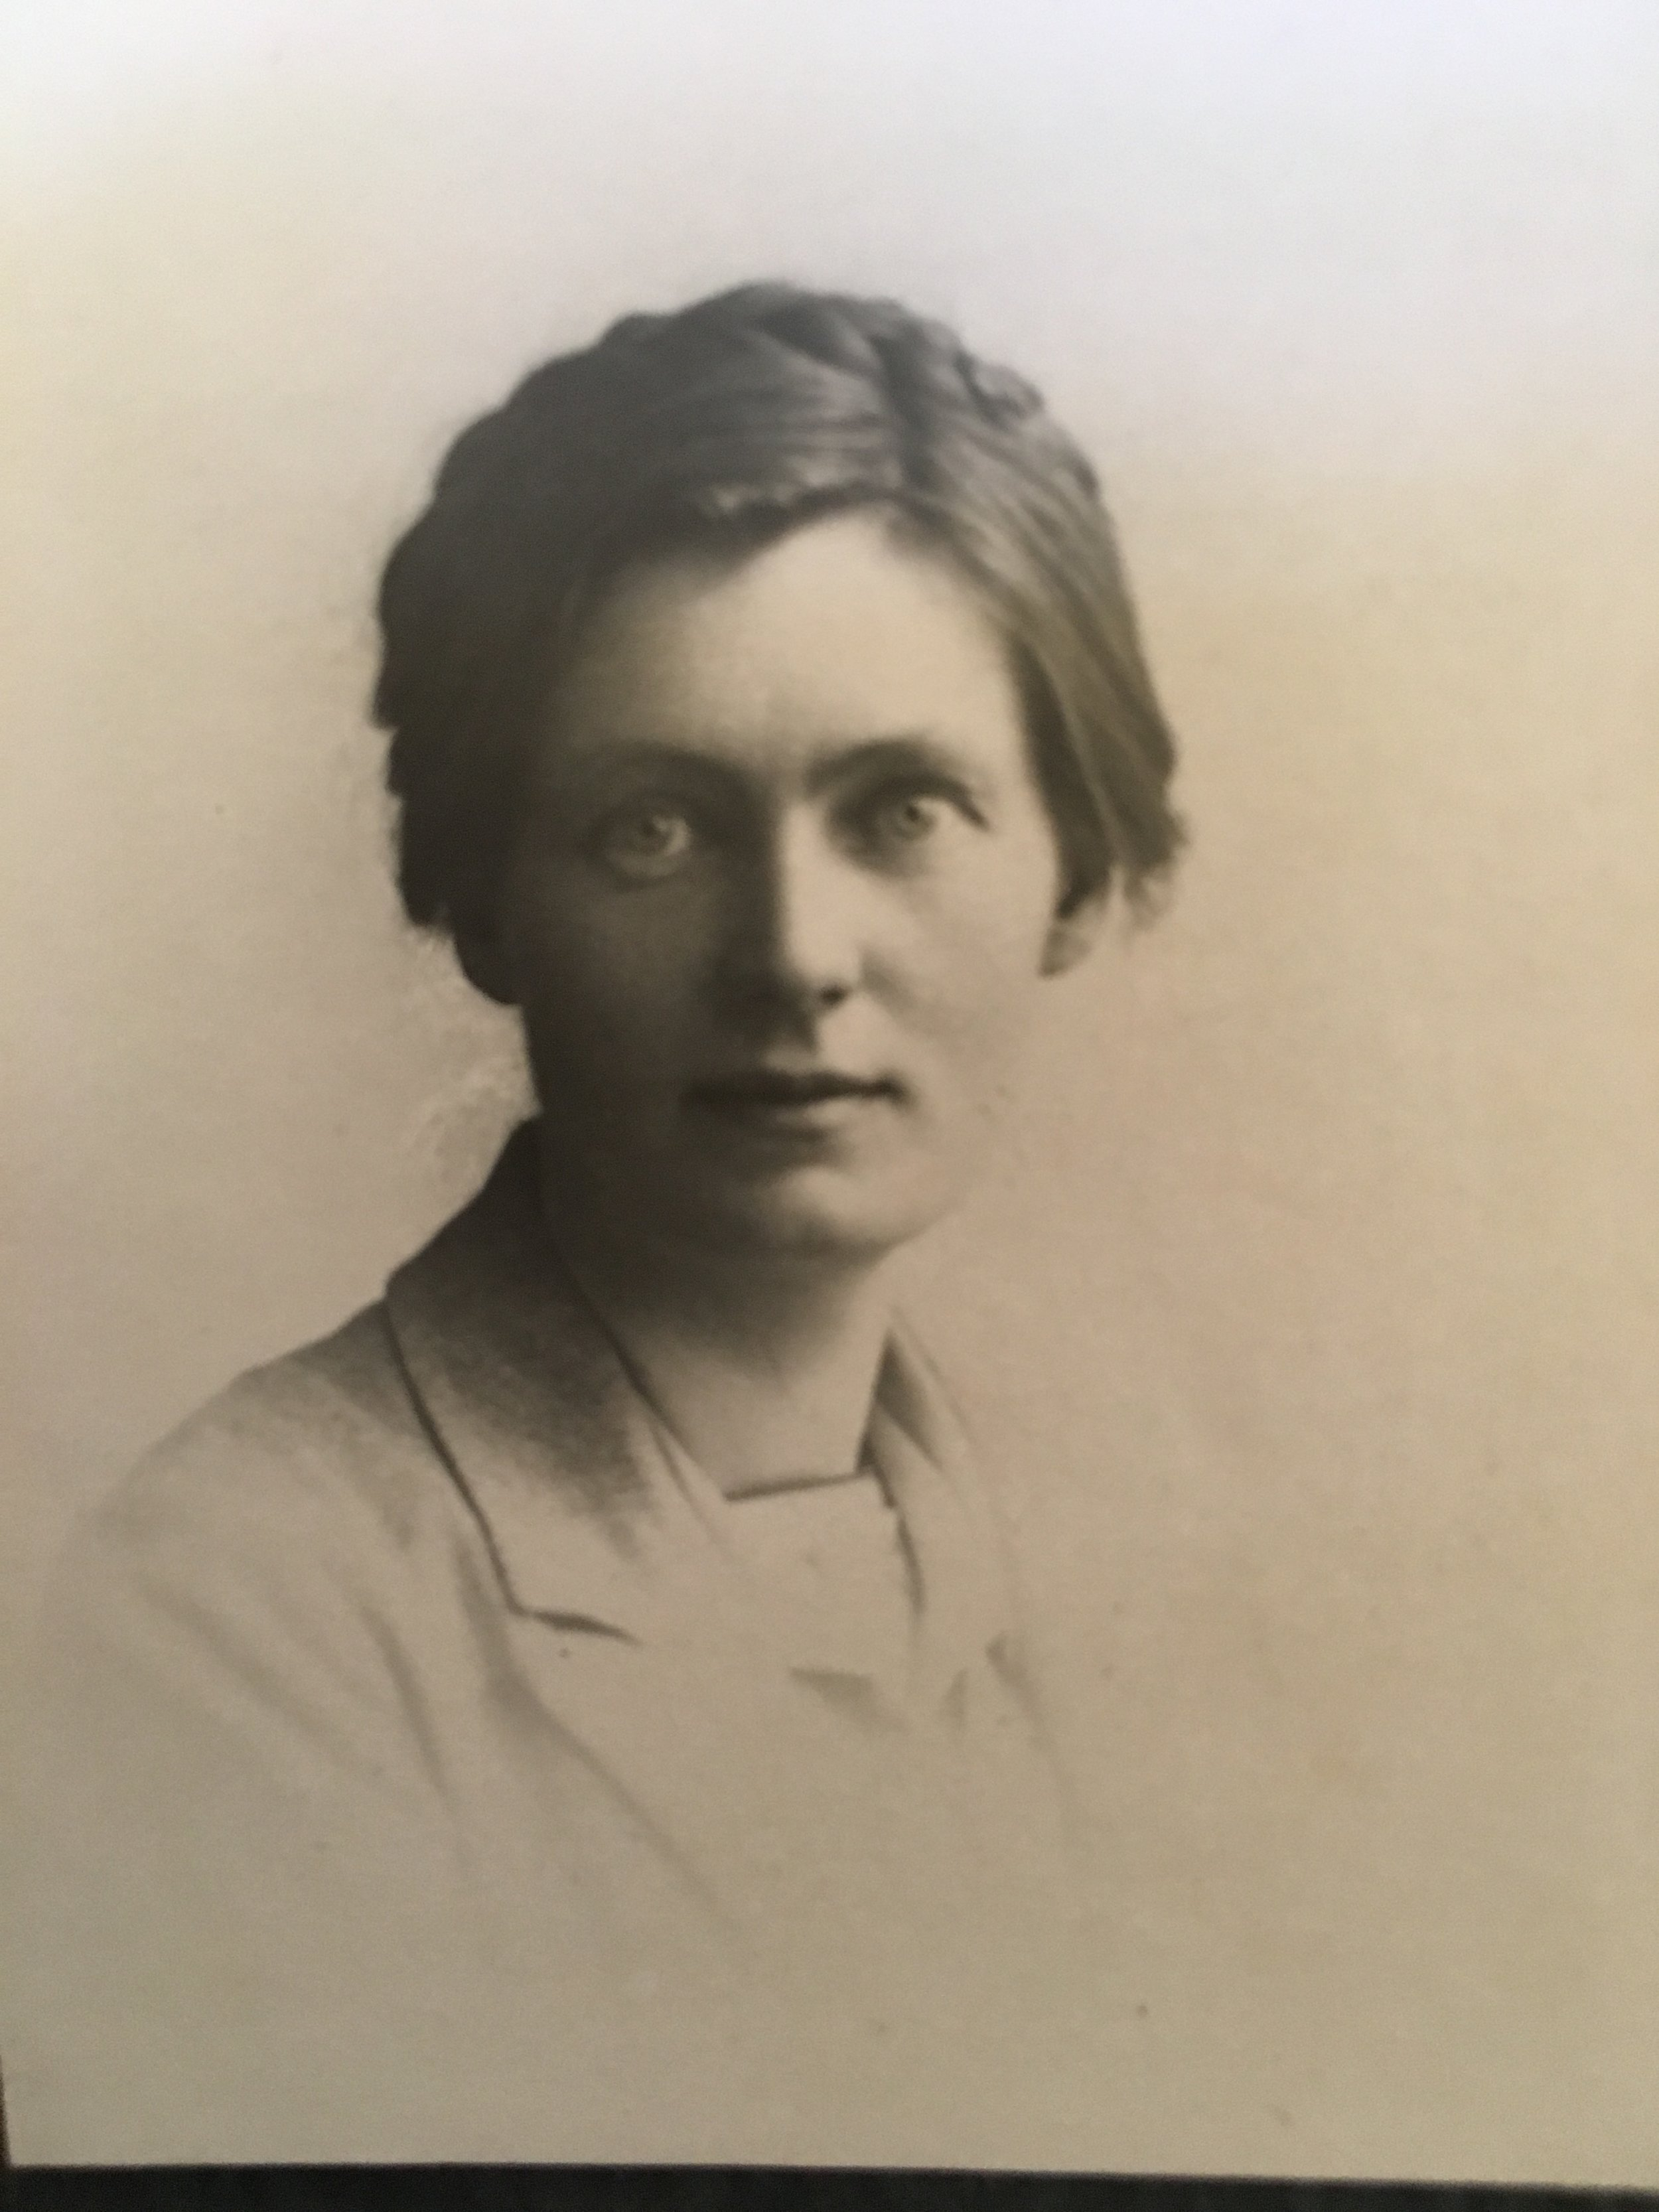 Camilla Skouly, the young Danish missionary